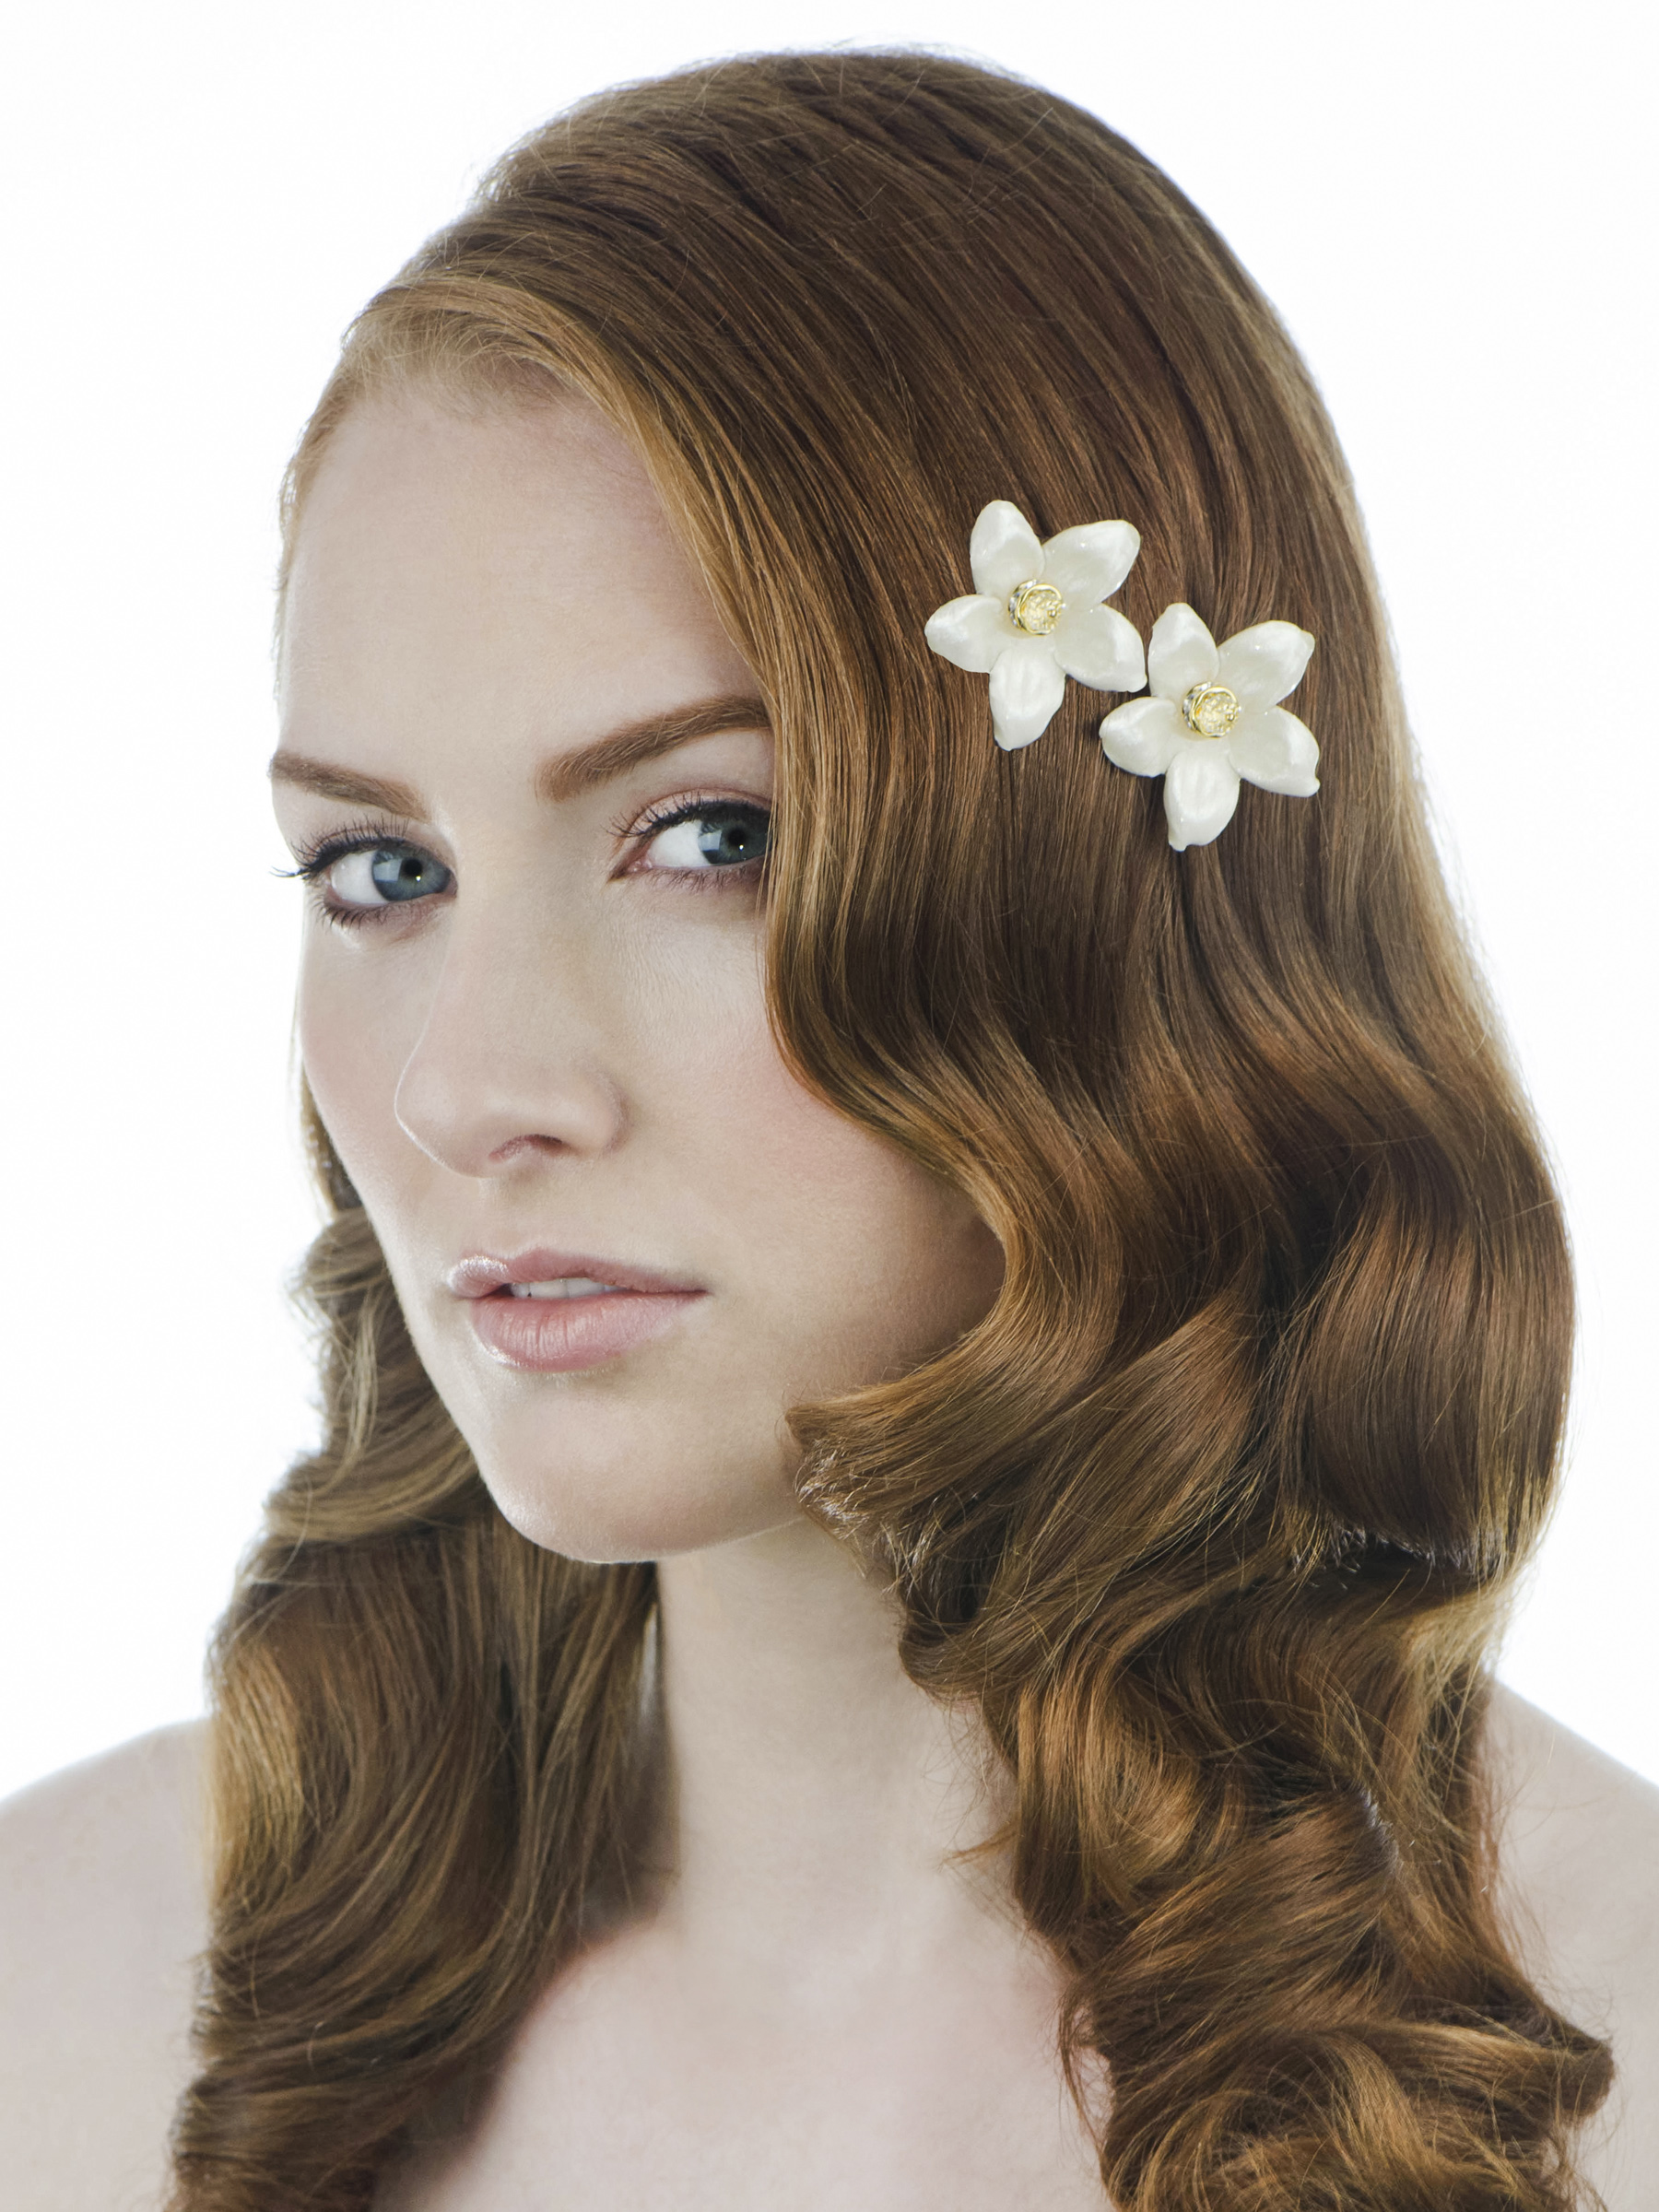 photo Corey Gomes  hair & make up Noel McKinnon    Joy Jasmine Single Blossom Combs